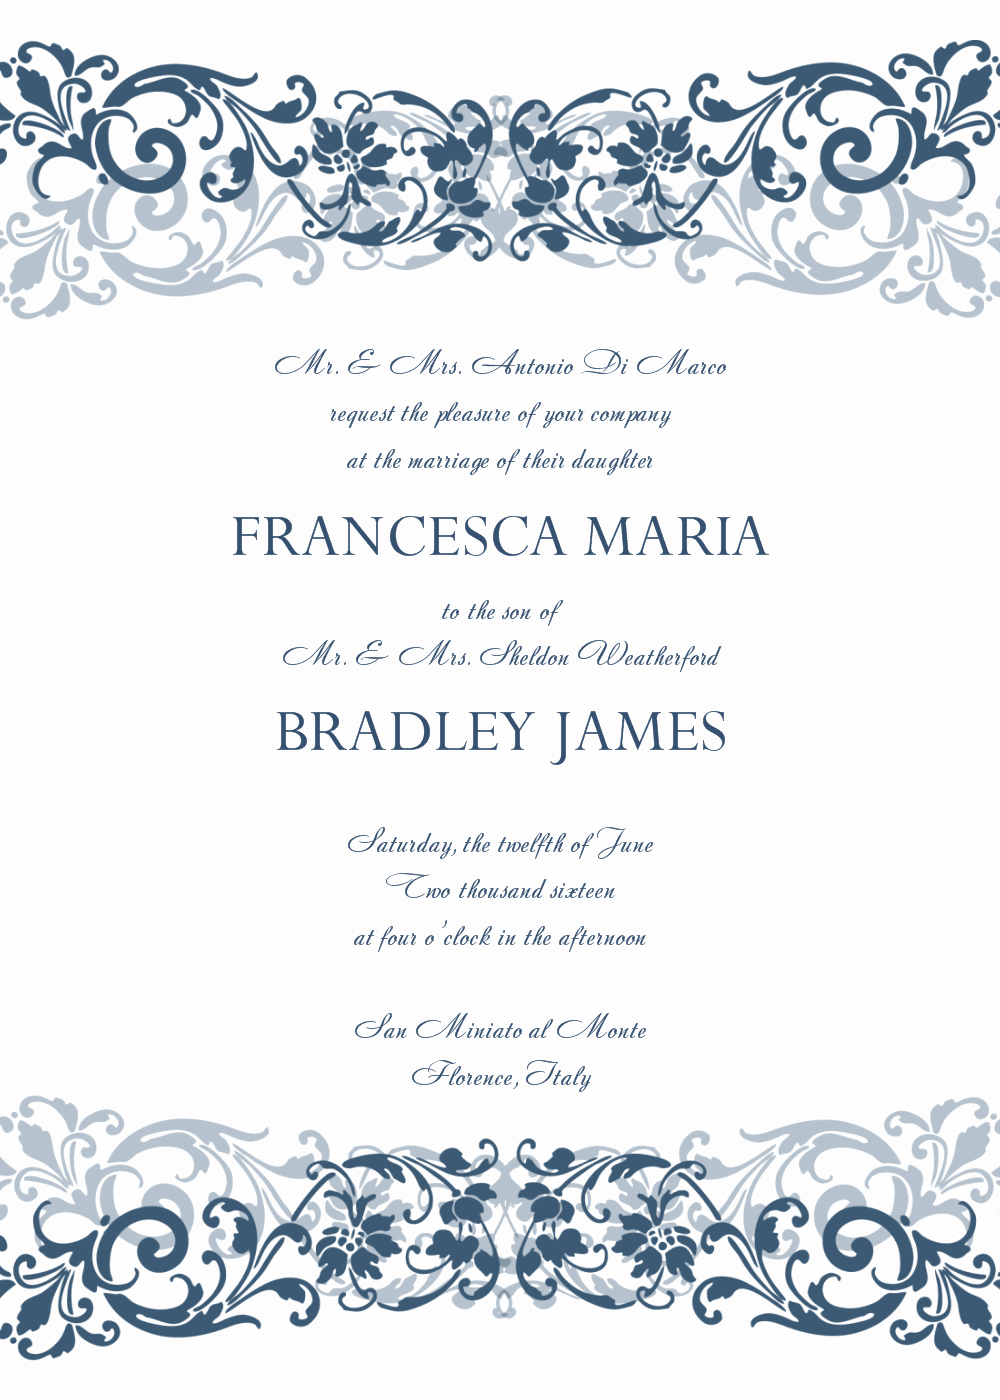 Word Wedding Invitation Template Unique 8 Free Wedding Invitation Templates Excel Pdf formats